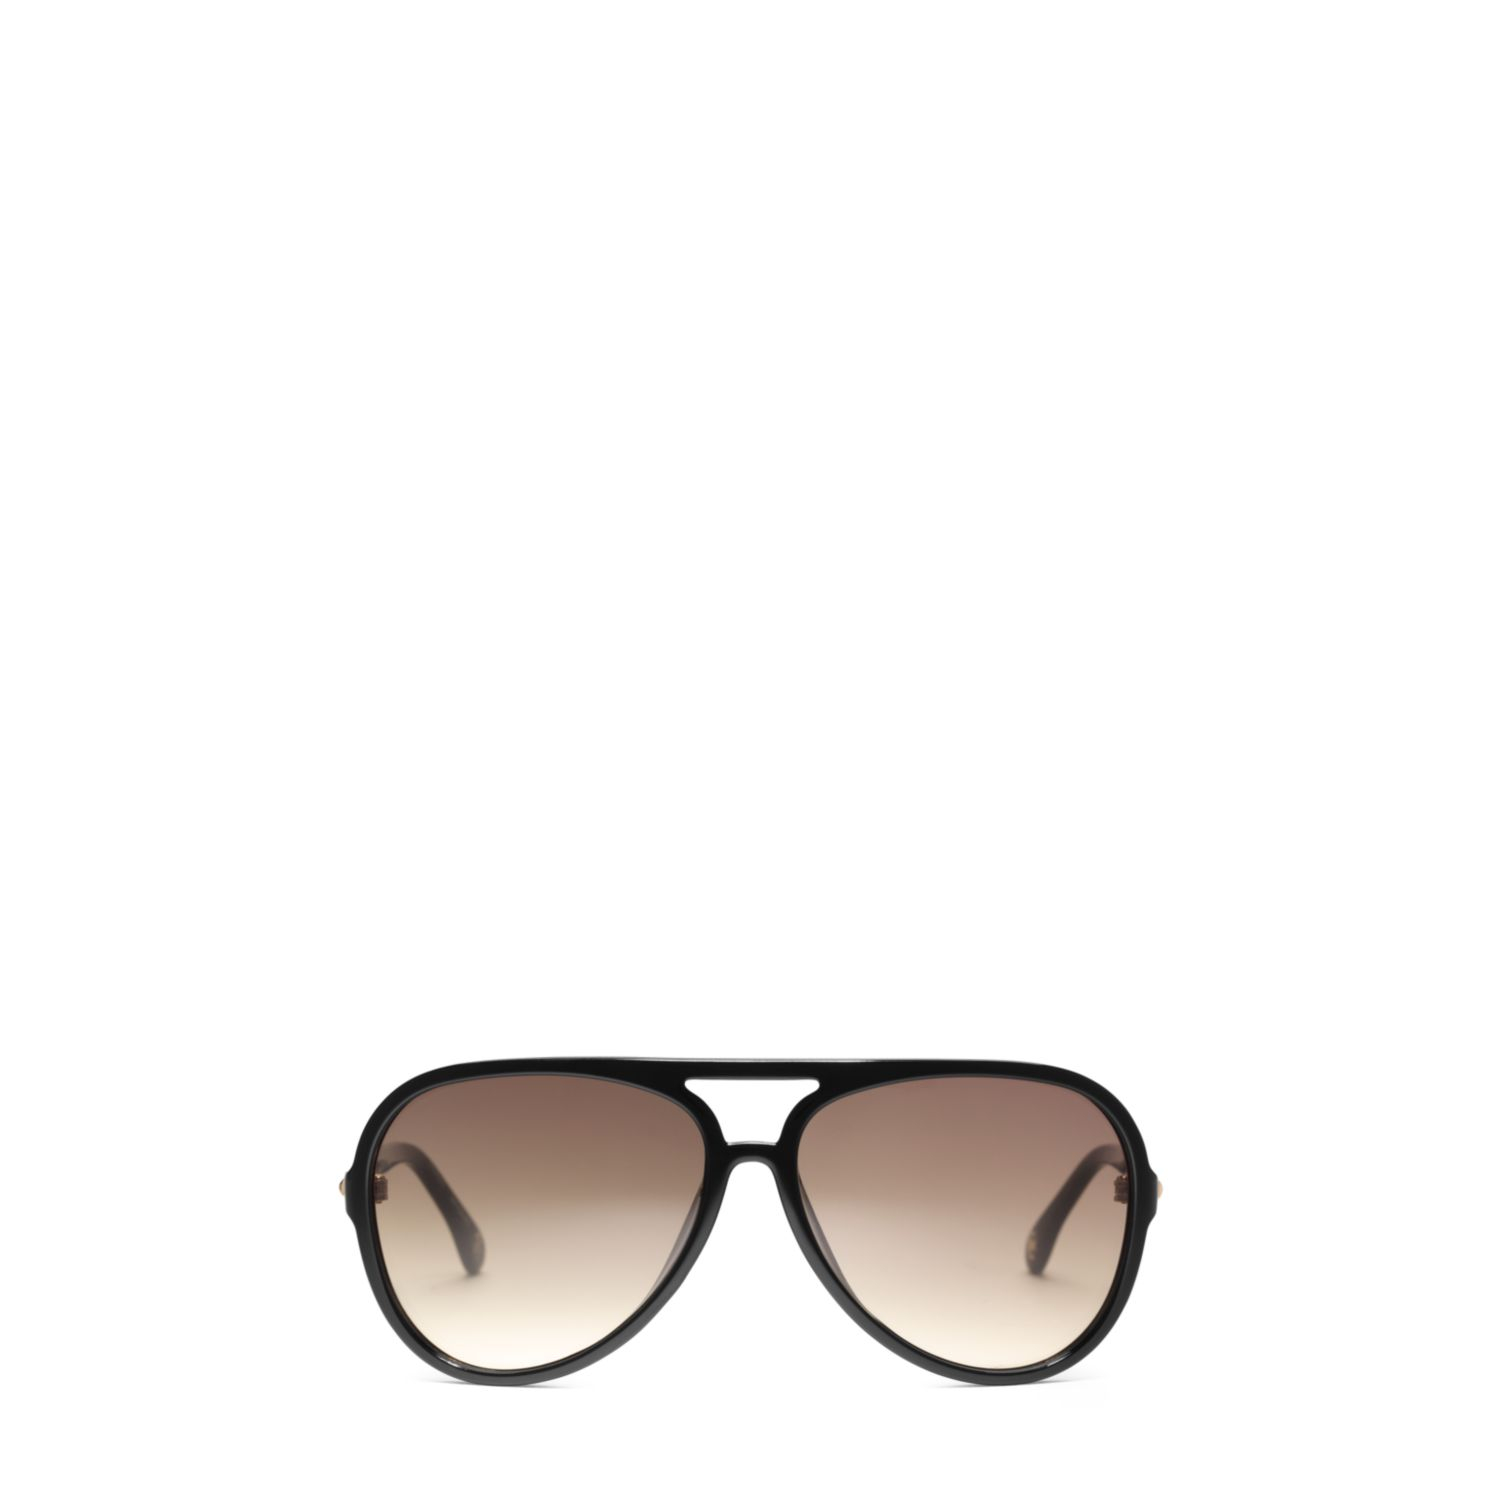 bd0bba47e0 Lyst - Michael Kors Brynn Tortoise Acetate Aviator Sunglasses in Black